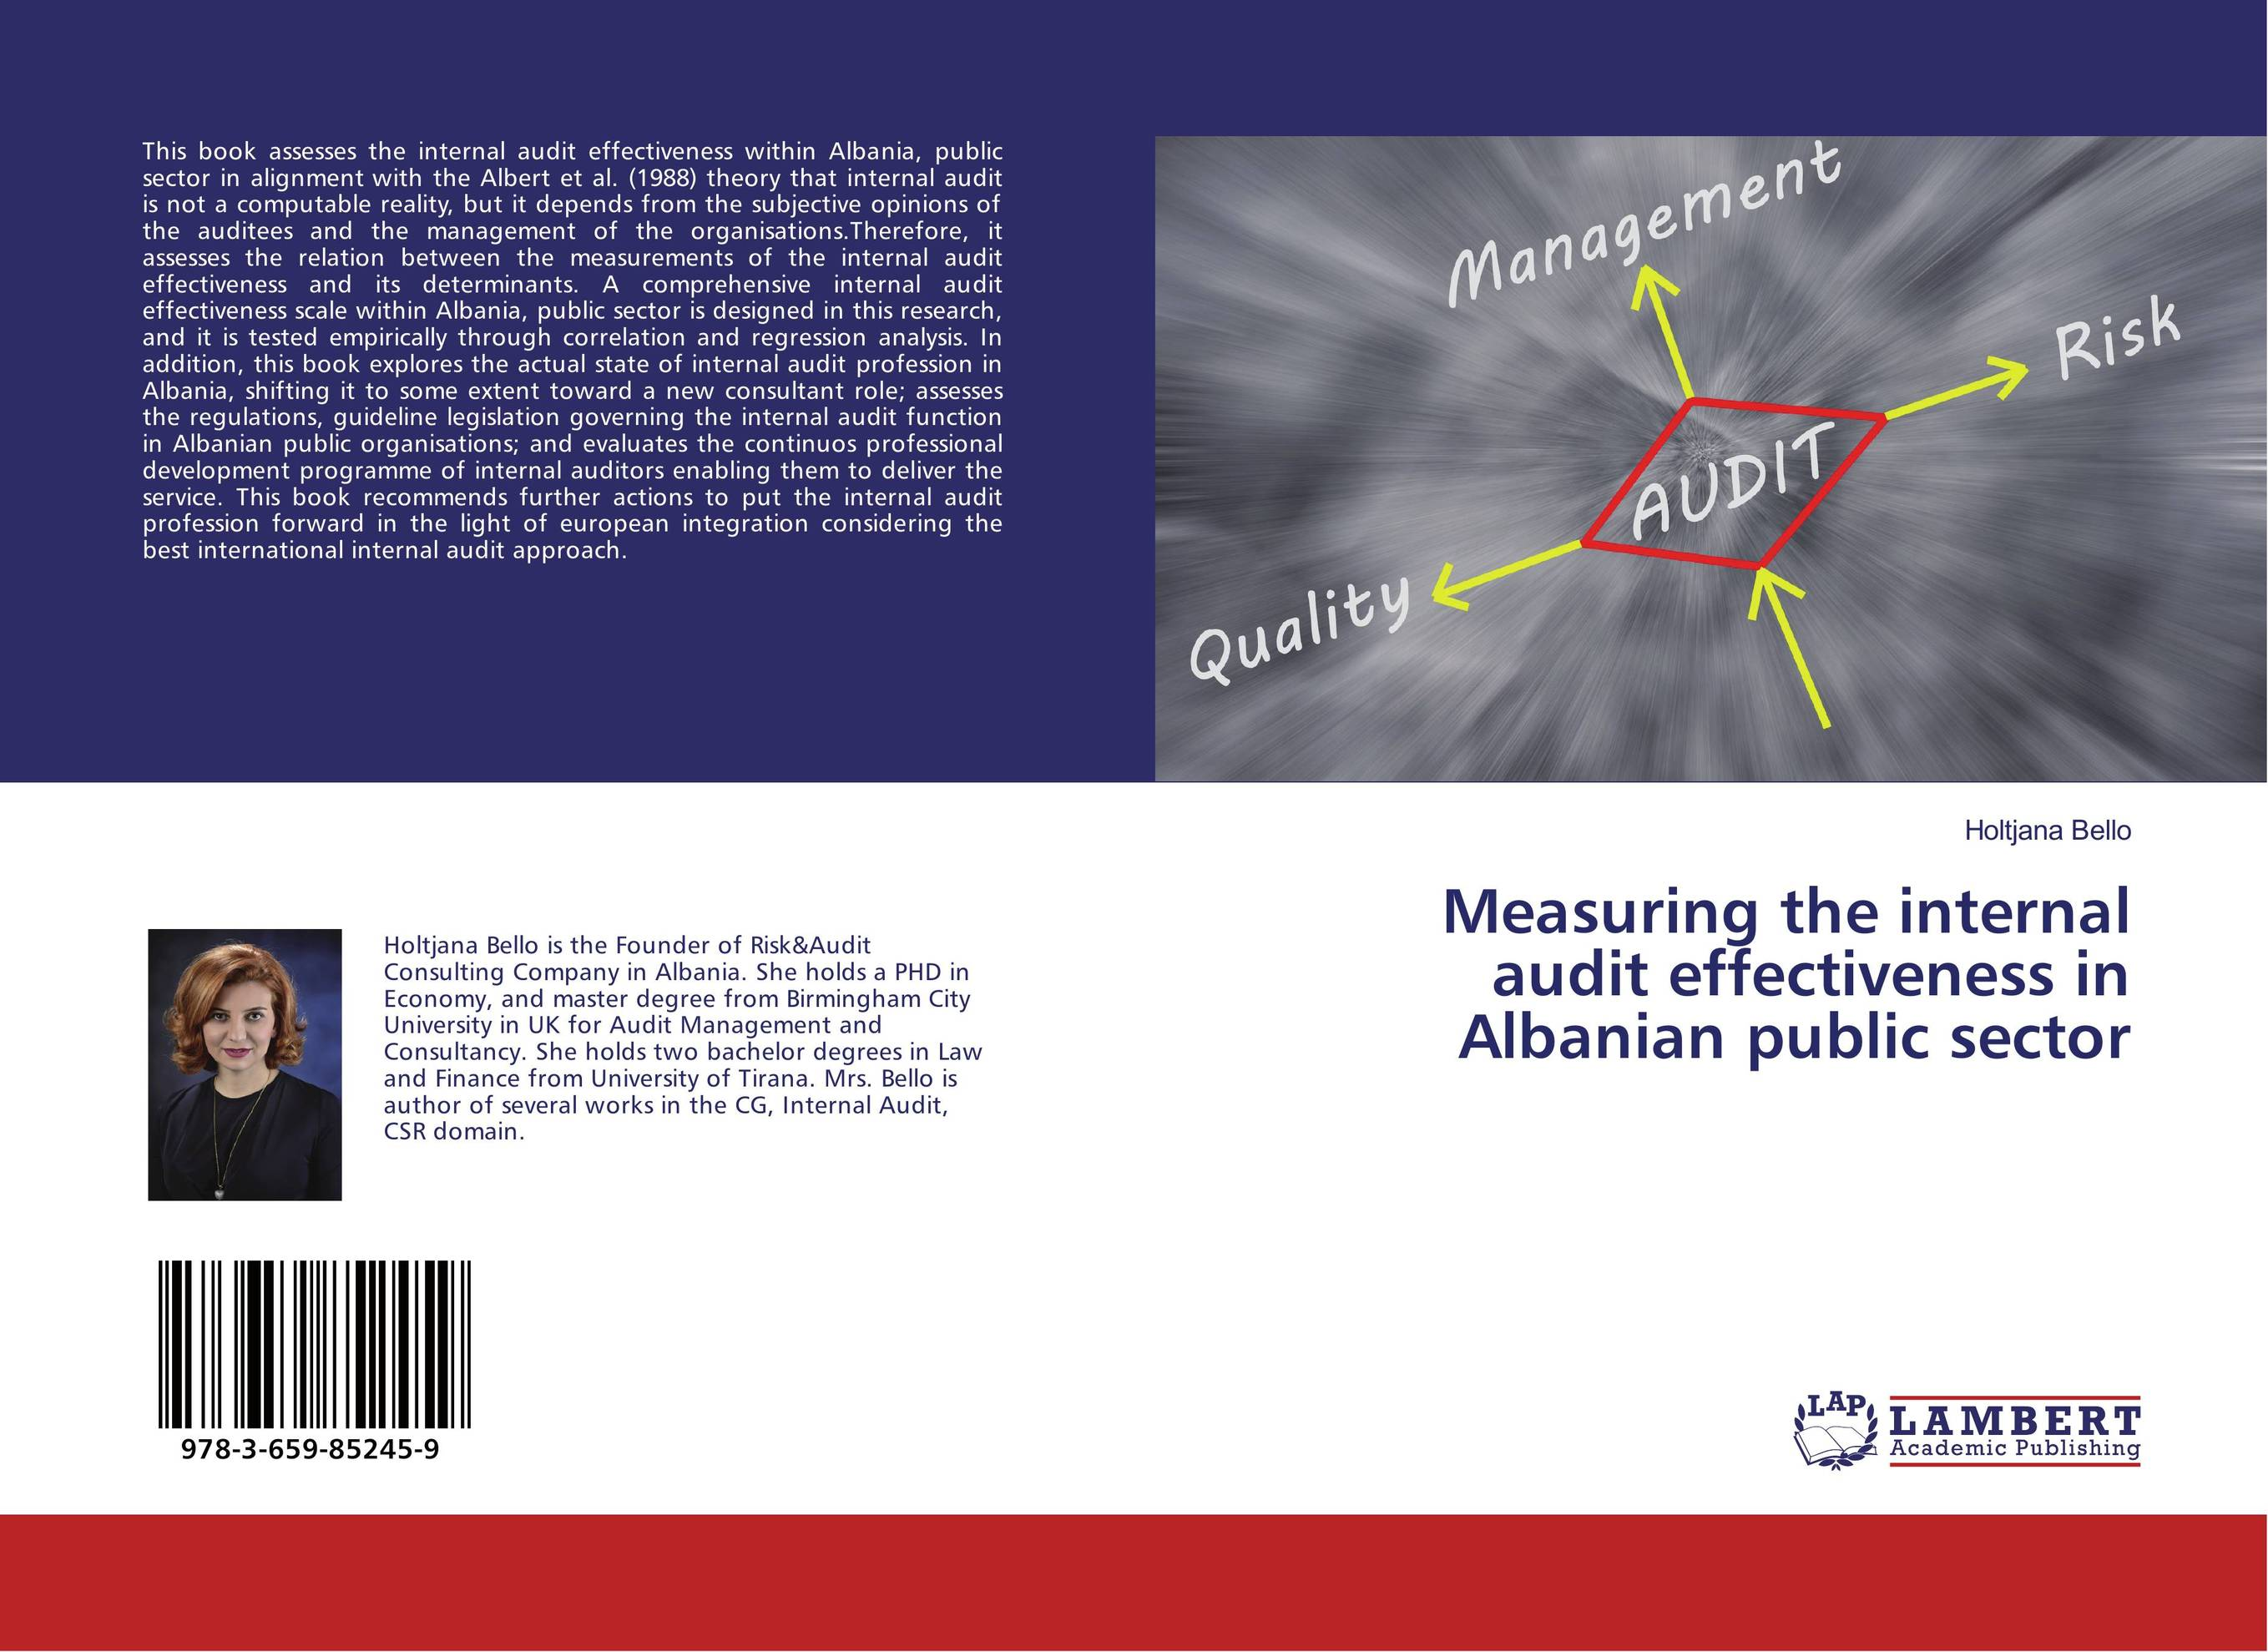 Measuring the internal audit effectiveness in Albanian public sector